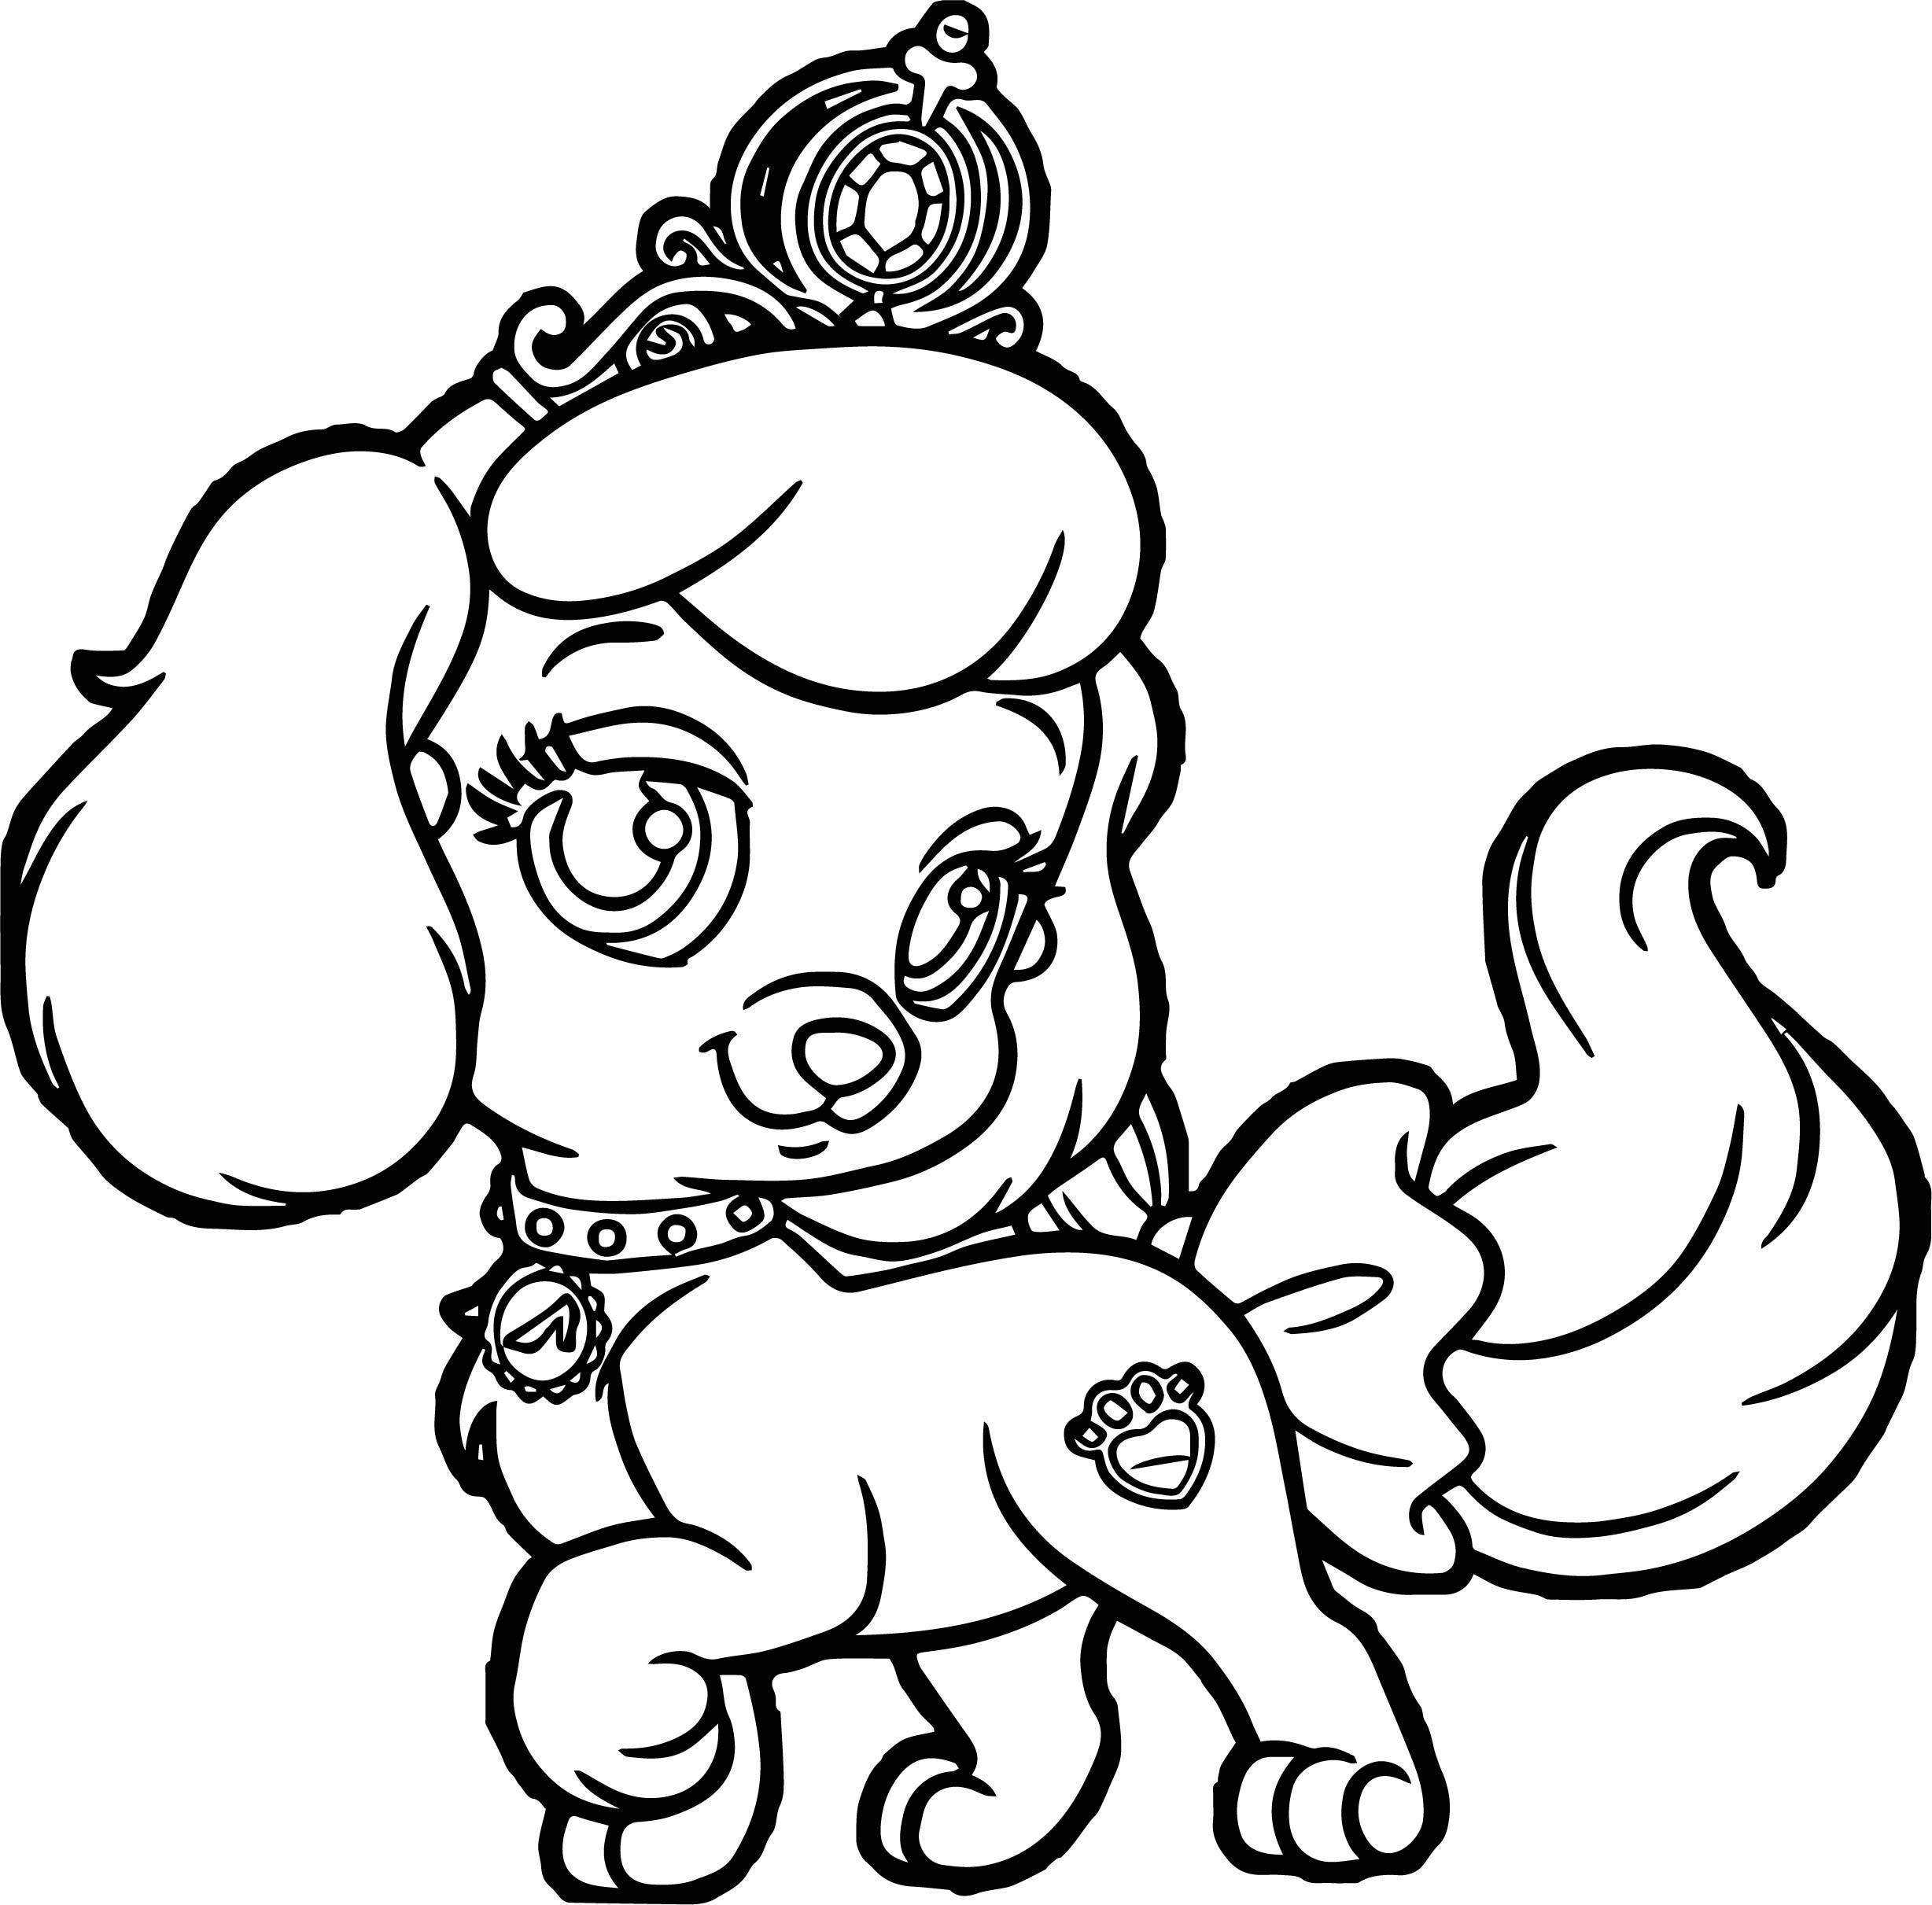 dog color pages the best free direct coloring page images download from dog color pages